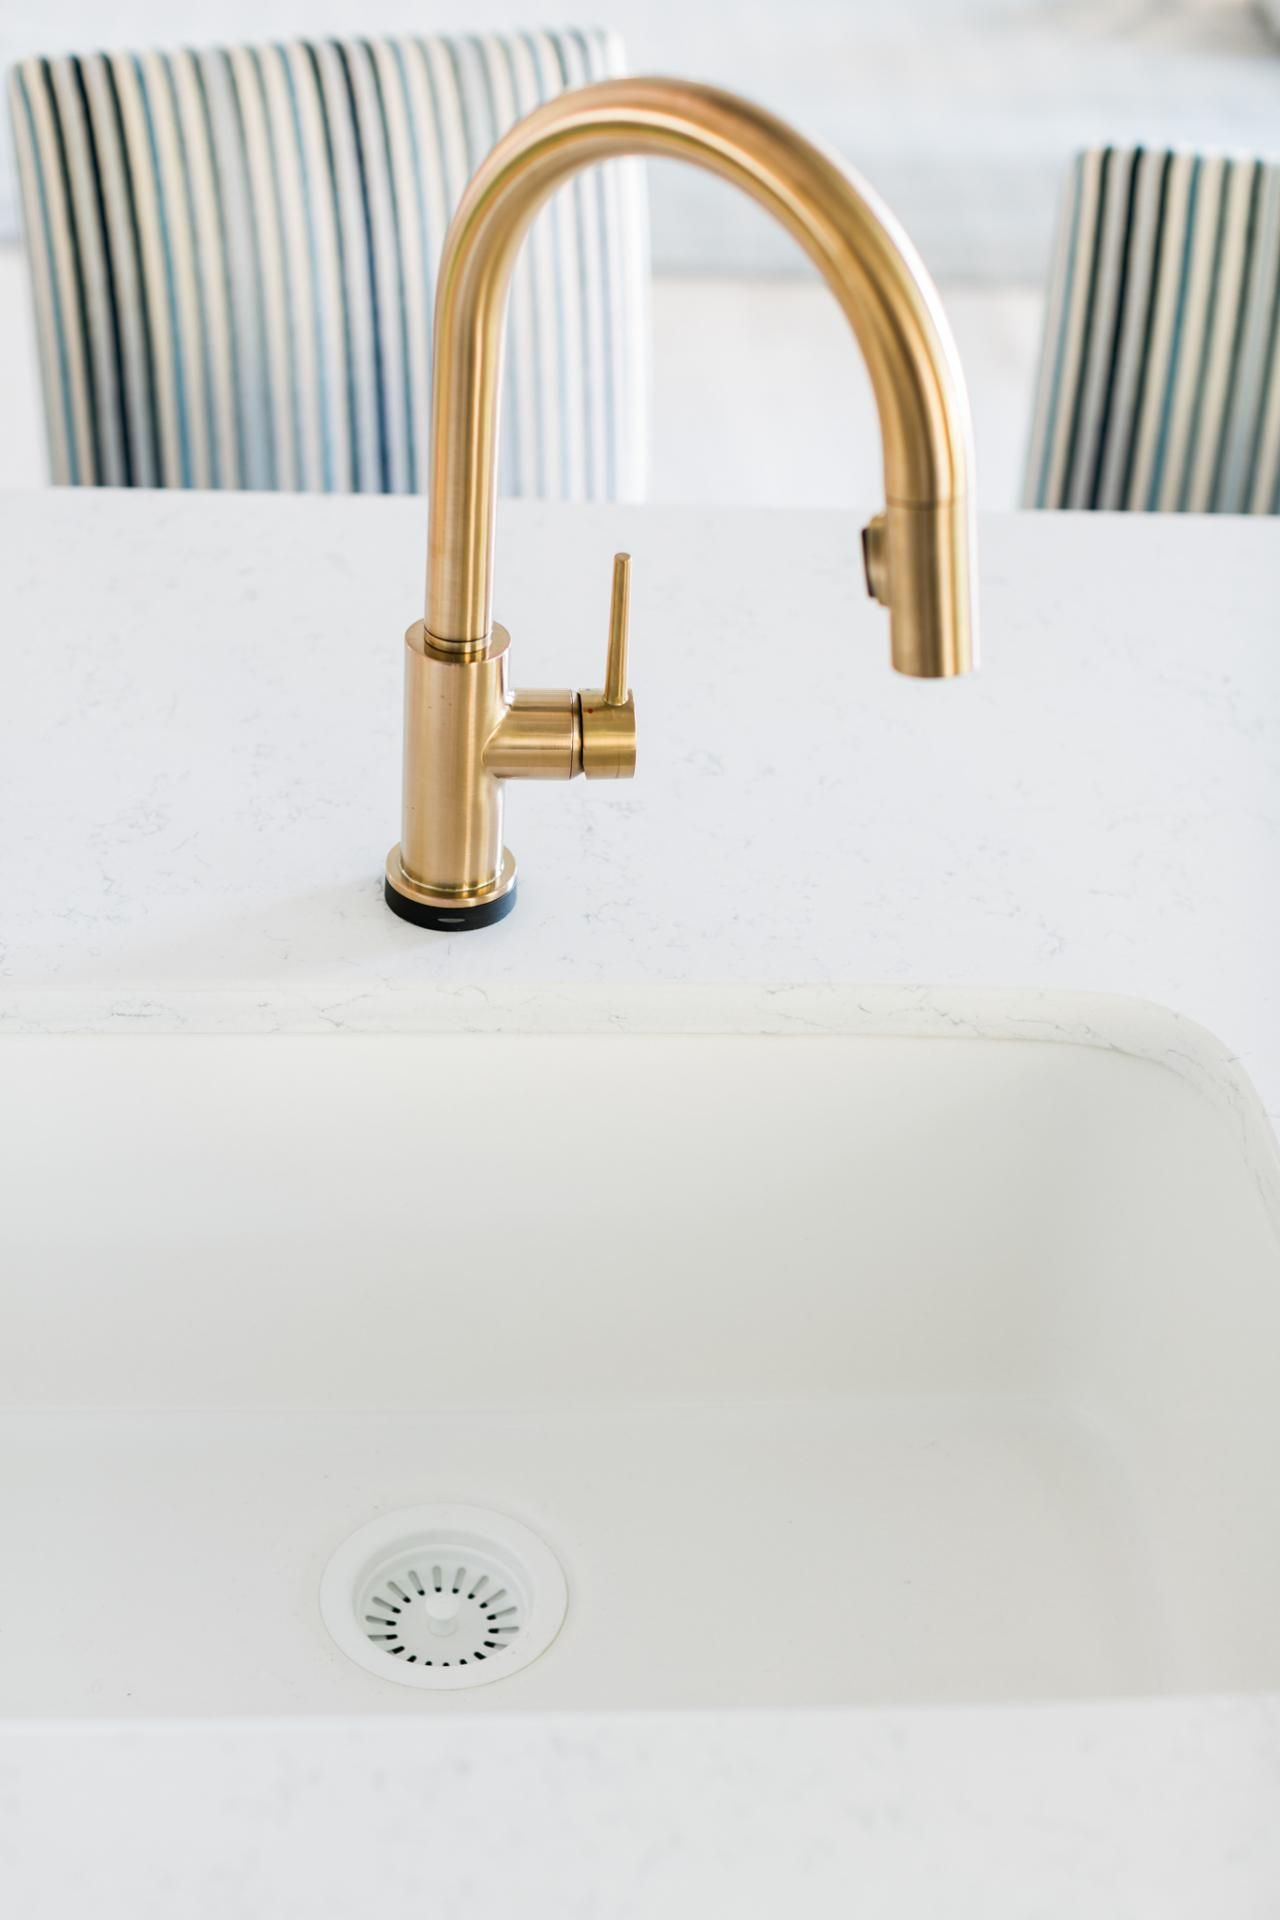 Stunning Old World Style Delta Trinsic Single Handle Pull Down Kitchen Faucet Featuring Touch₂o Technology